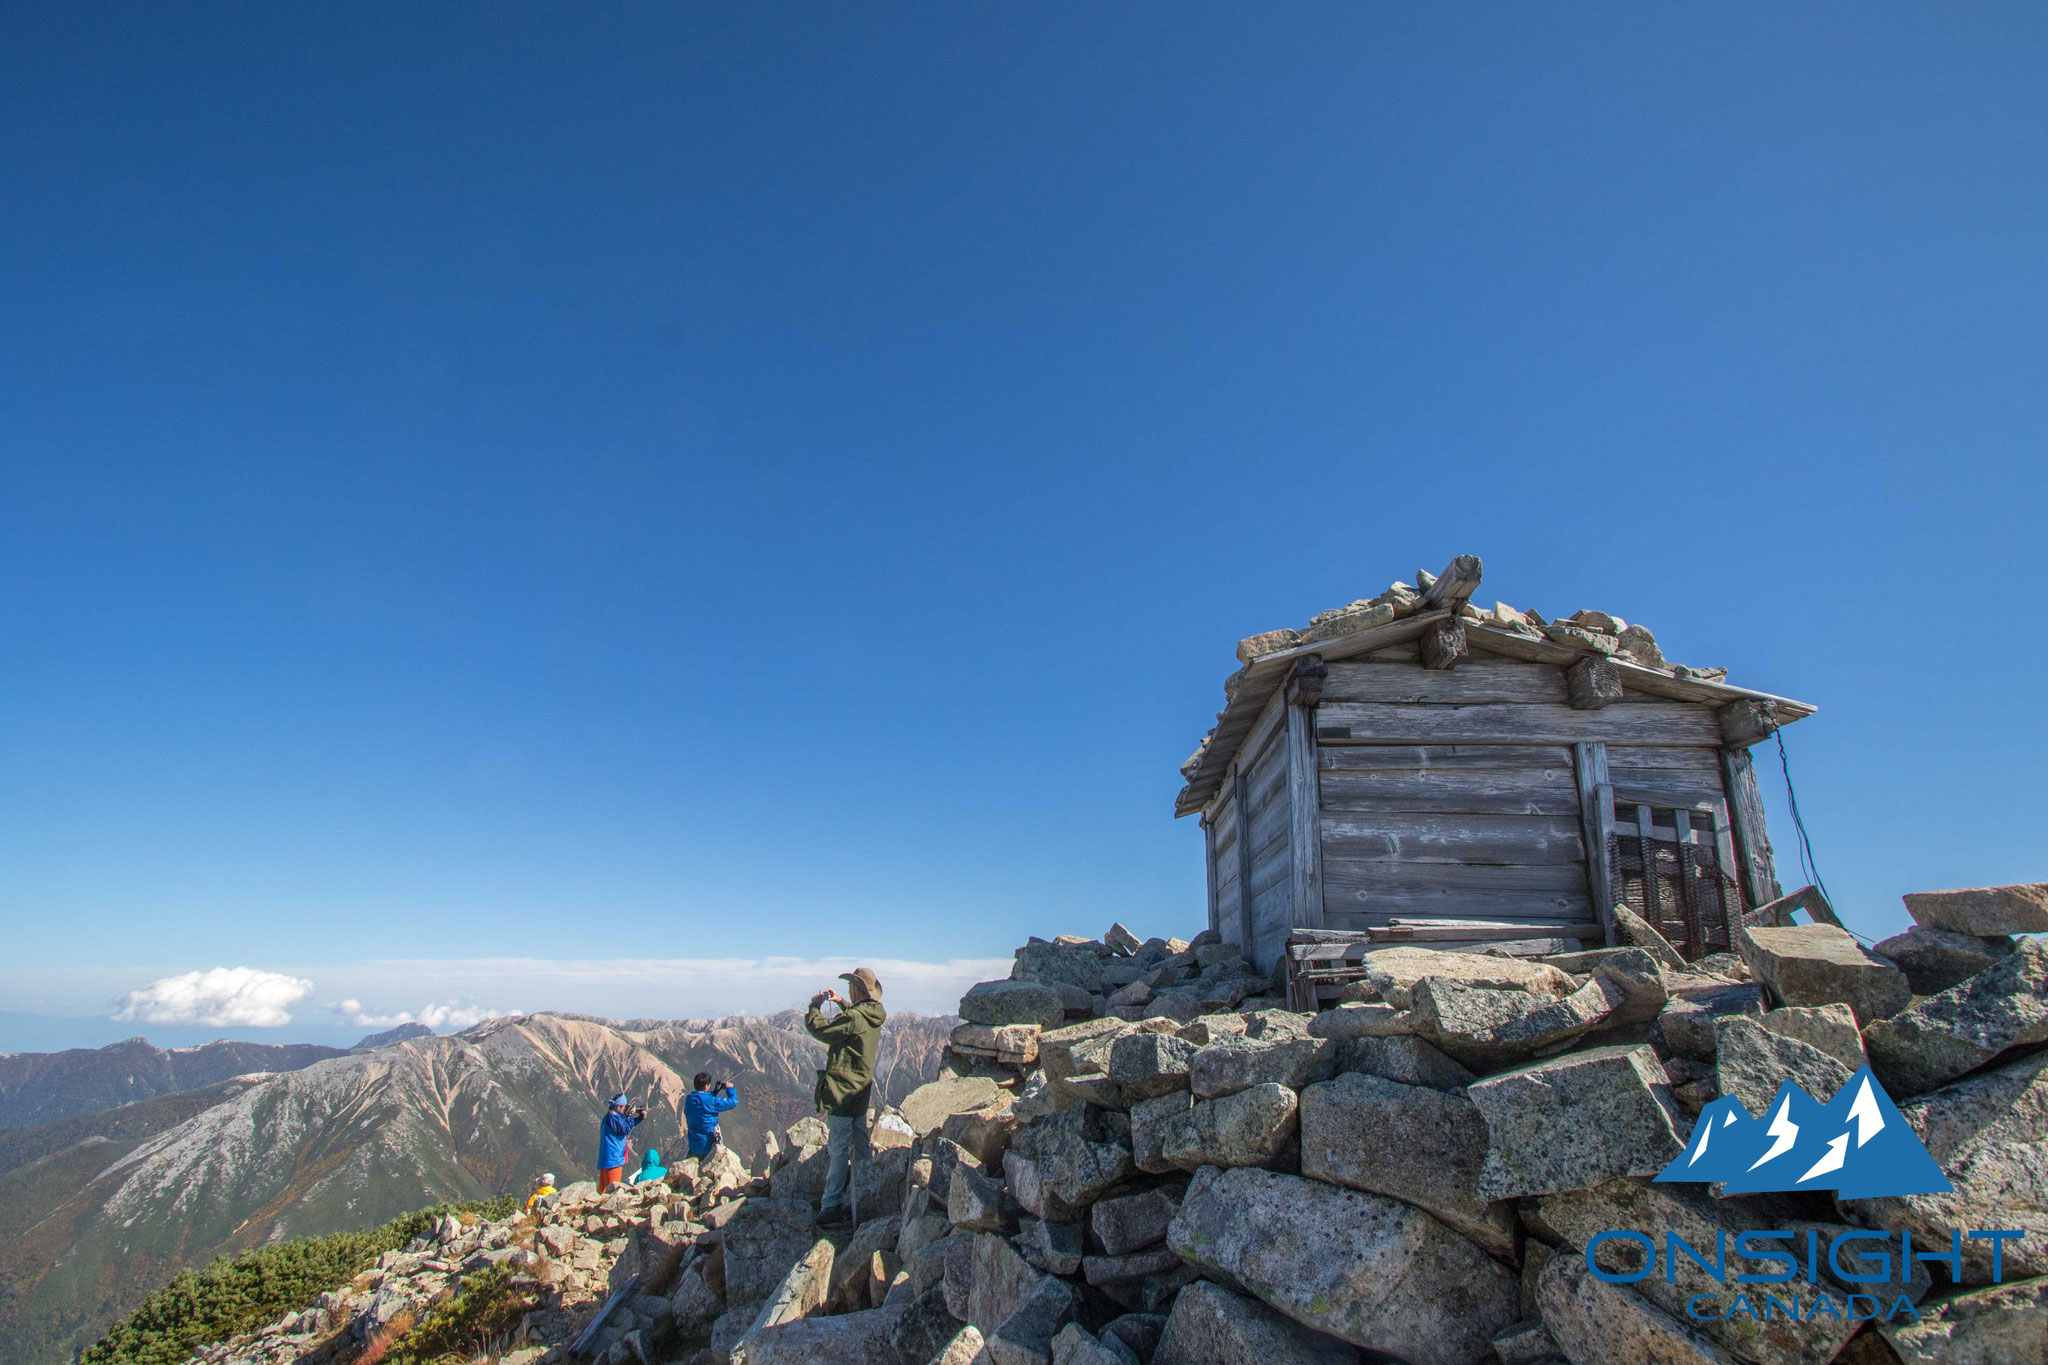 Little shrine at the top of mountain